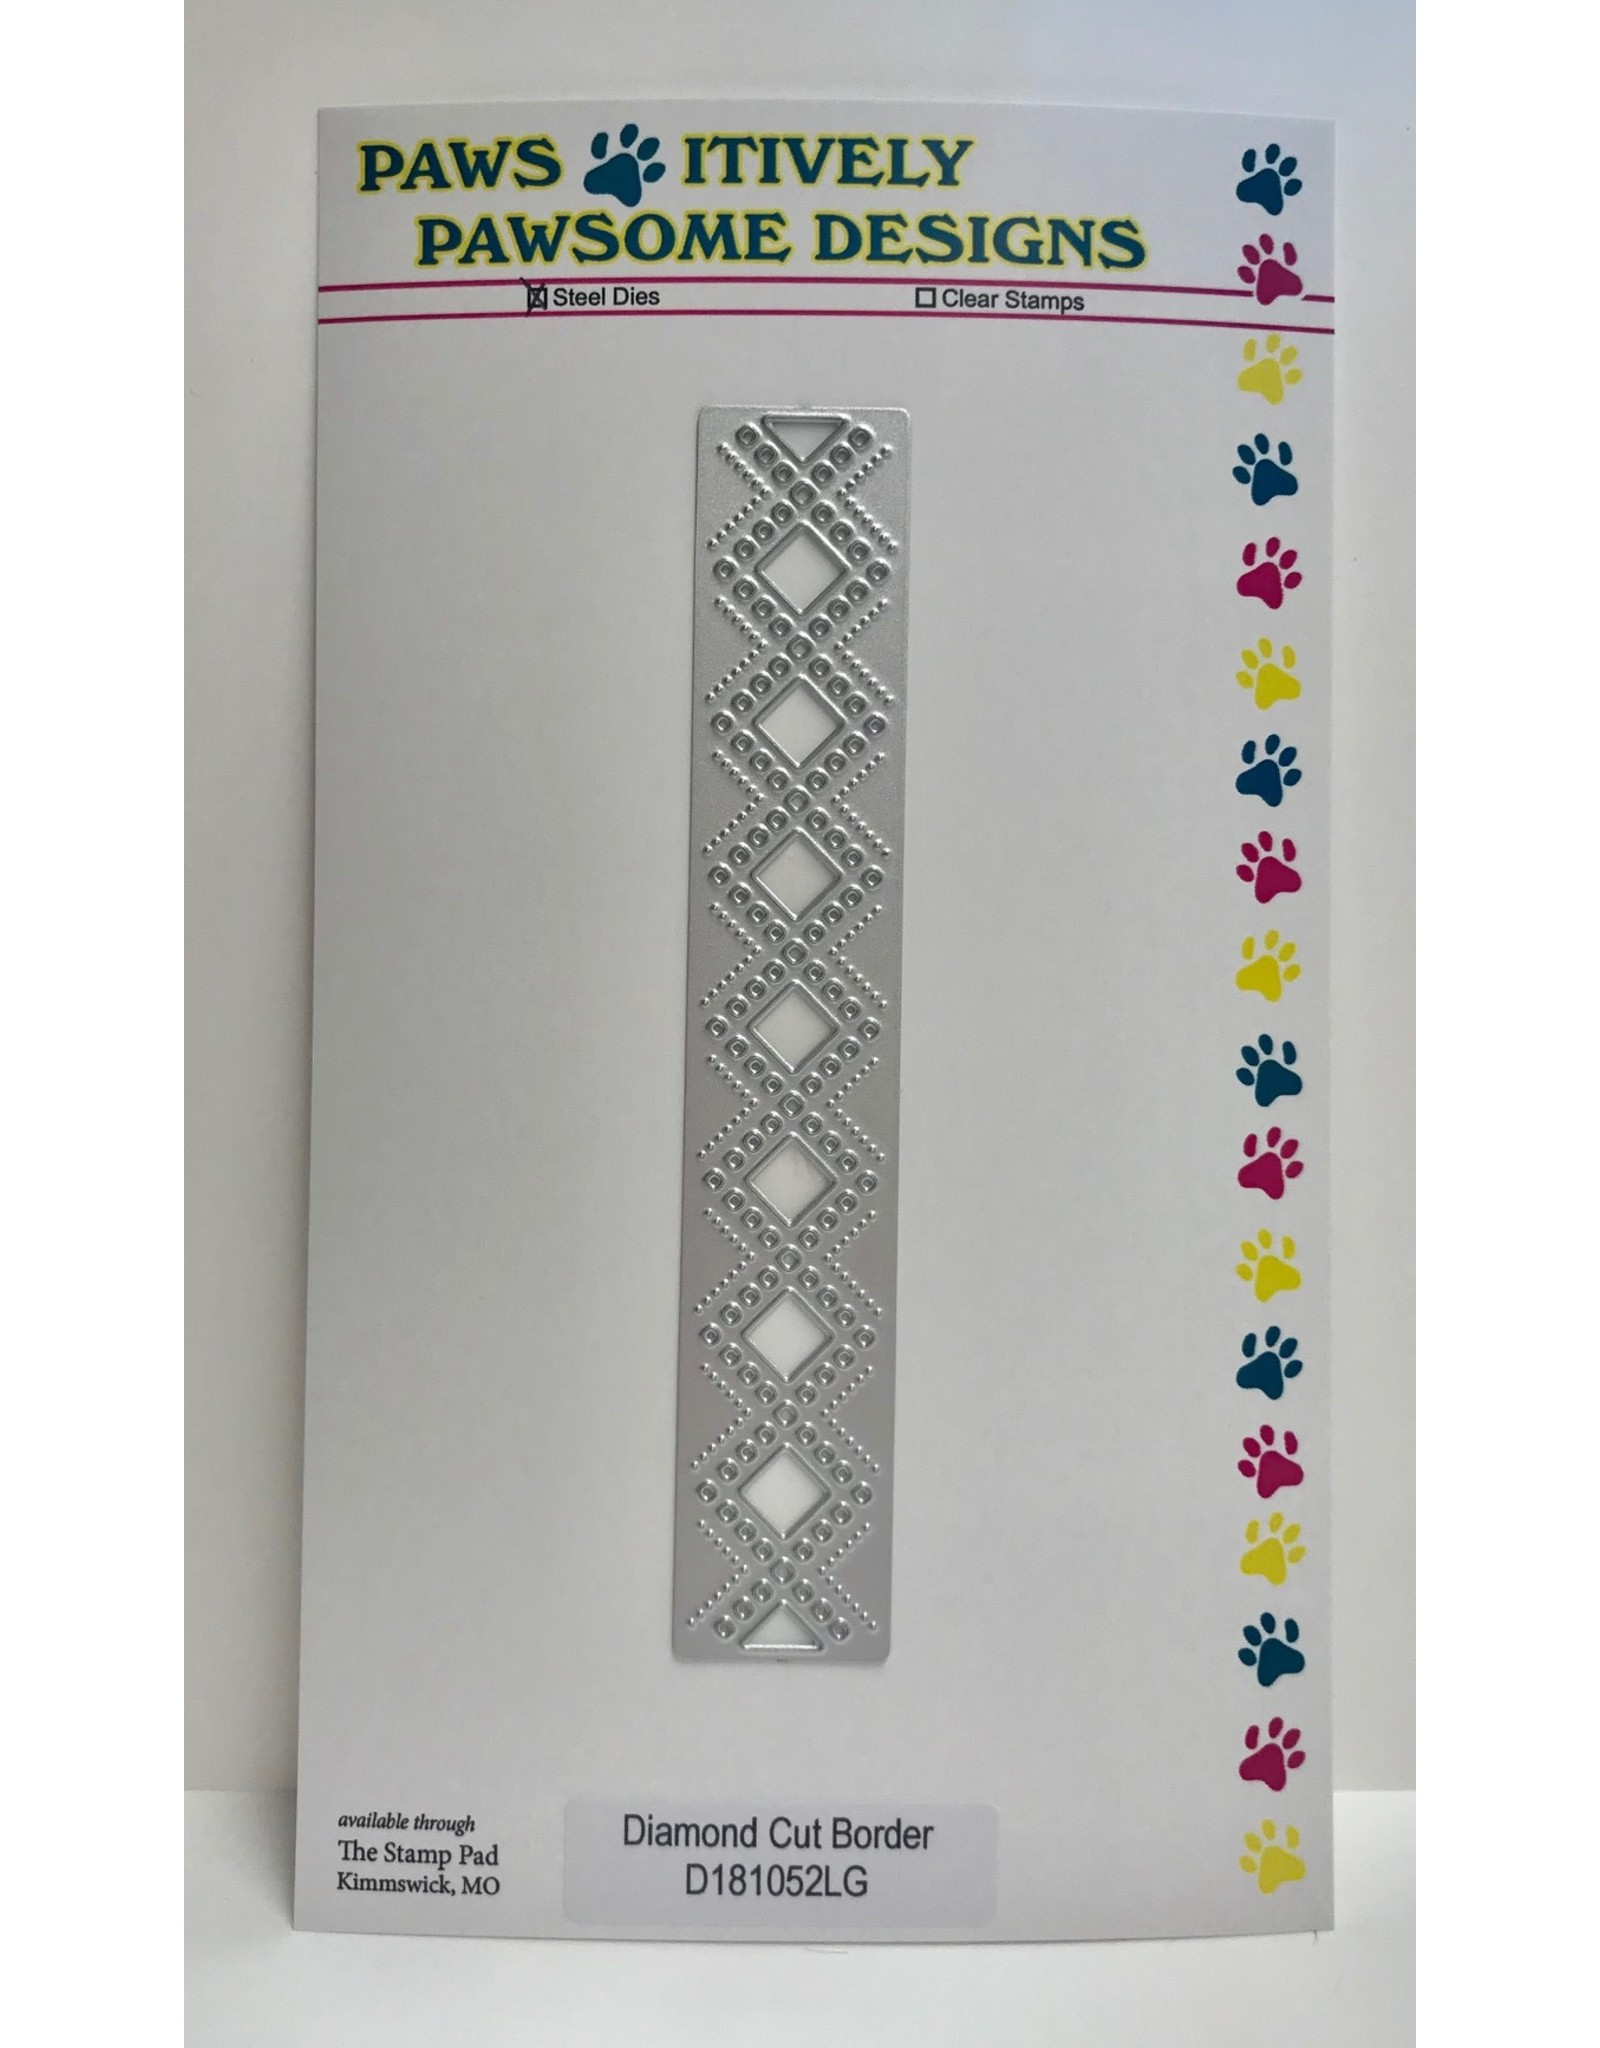 Paws-Itively Pawsome Designs Diamond Cut Border - Die